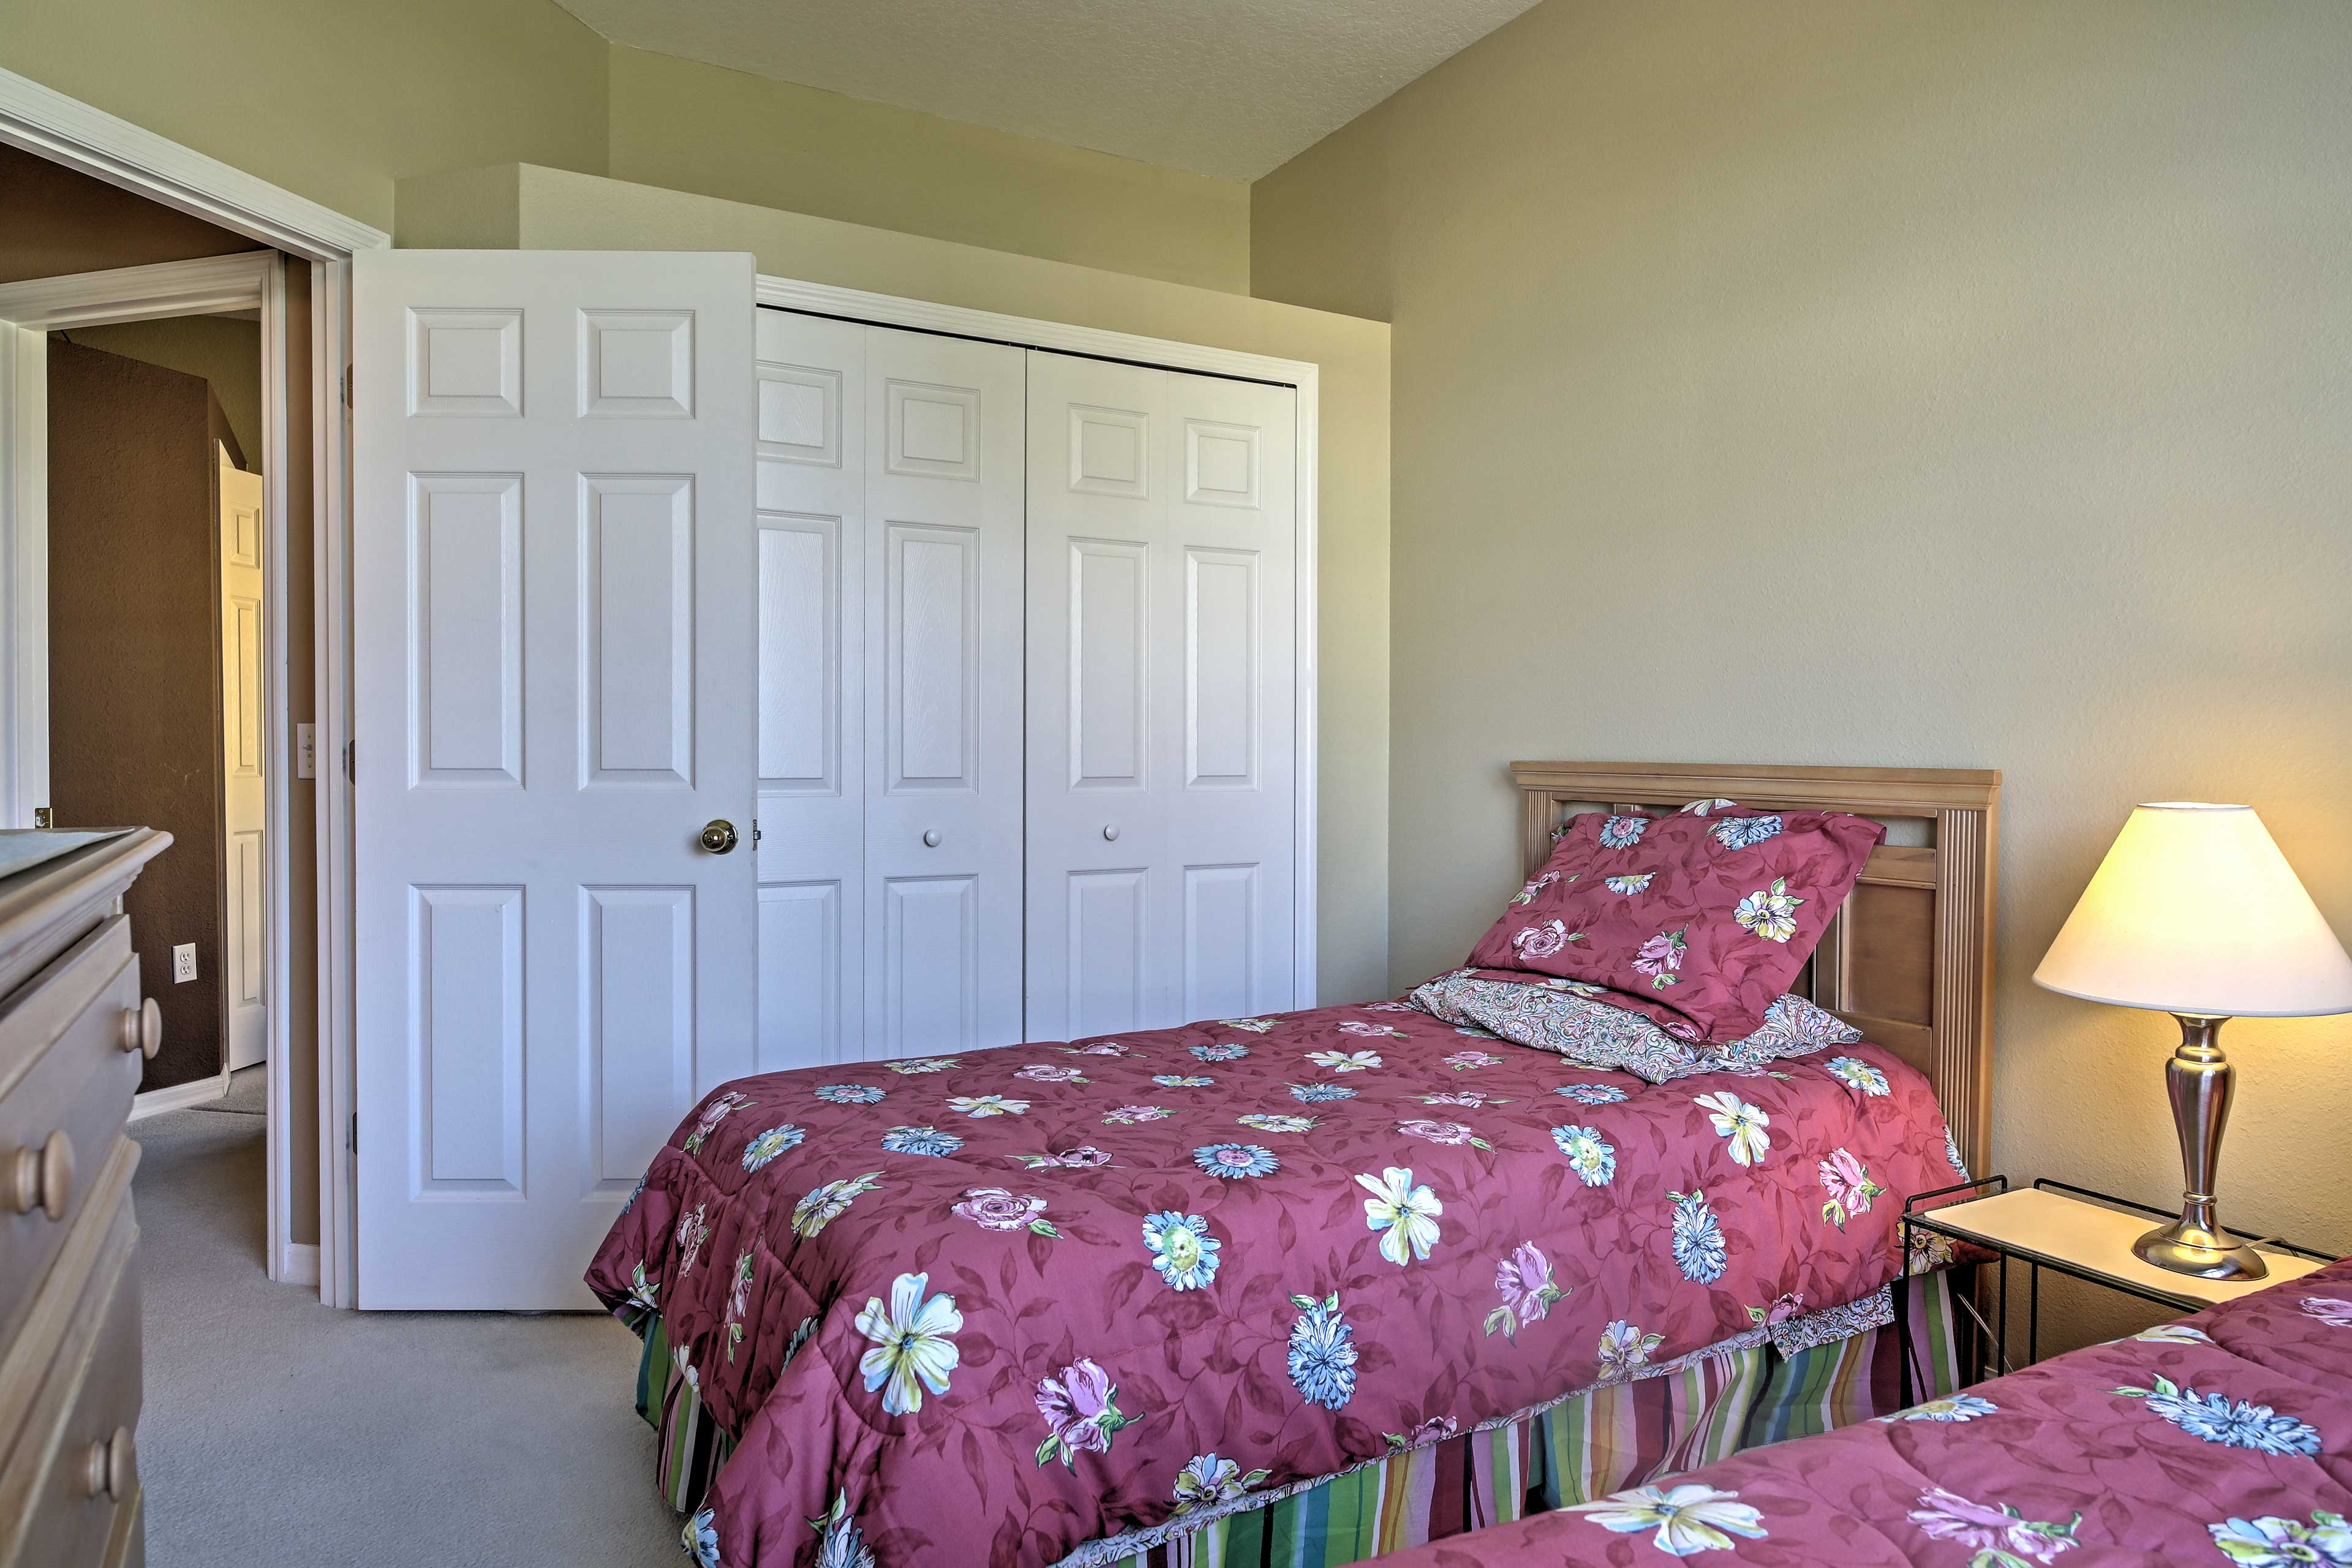 This bedroom with 2 twin-sized beds is the ideal room for kids.